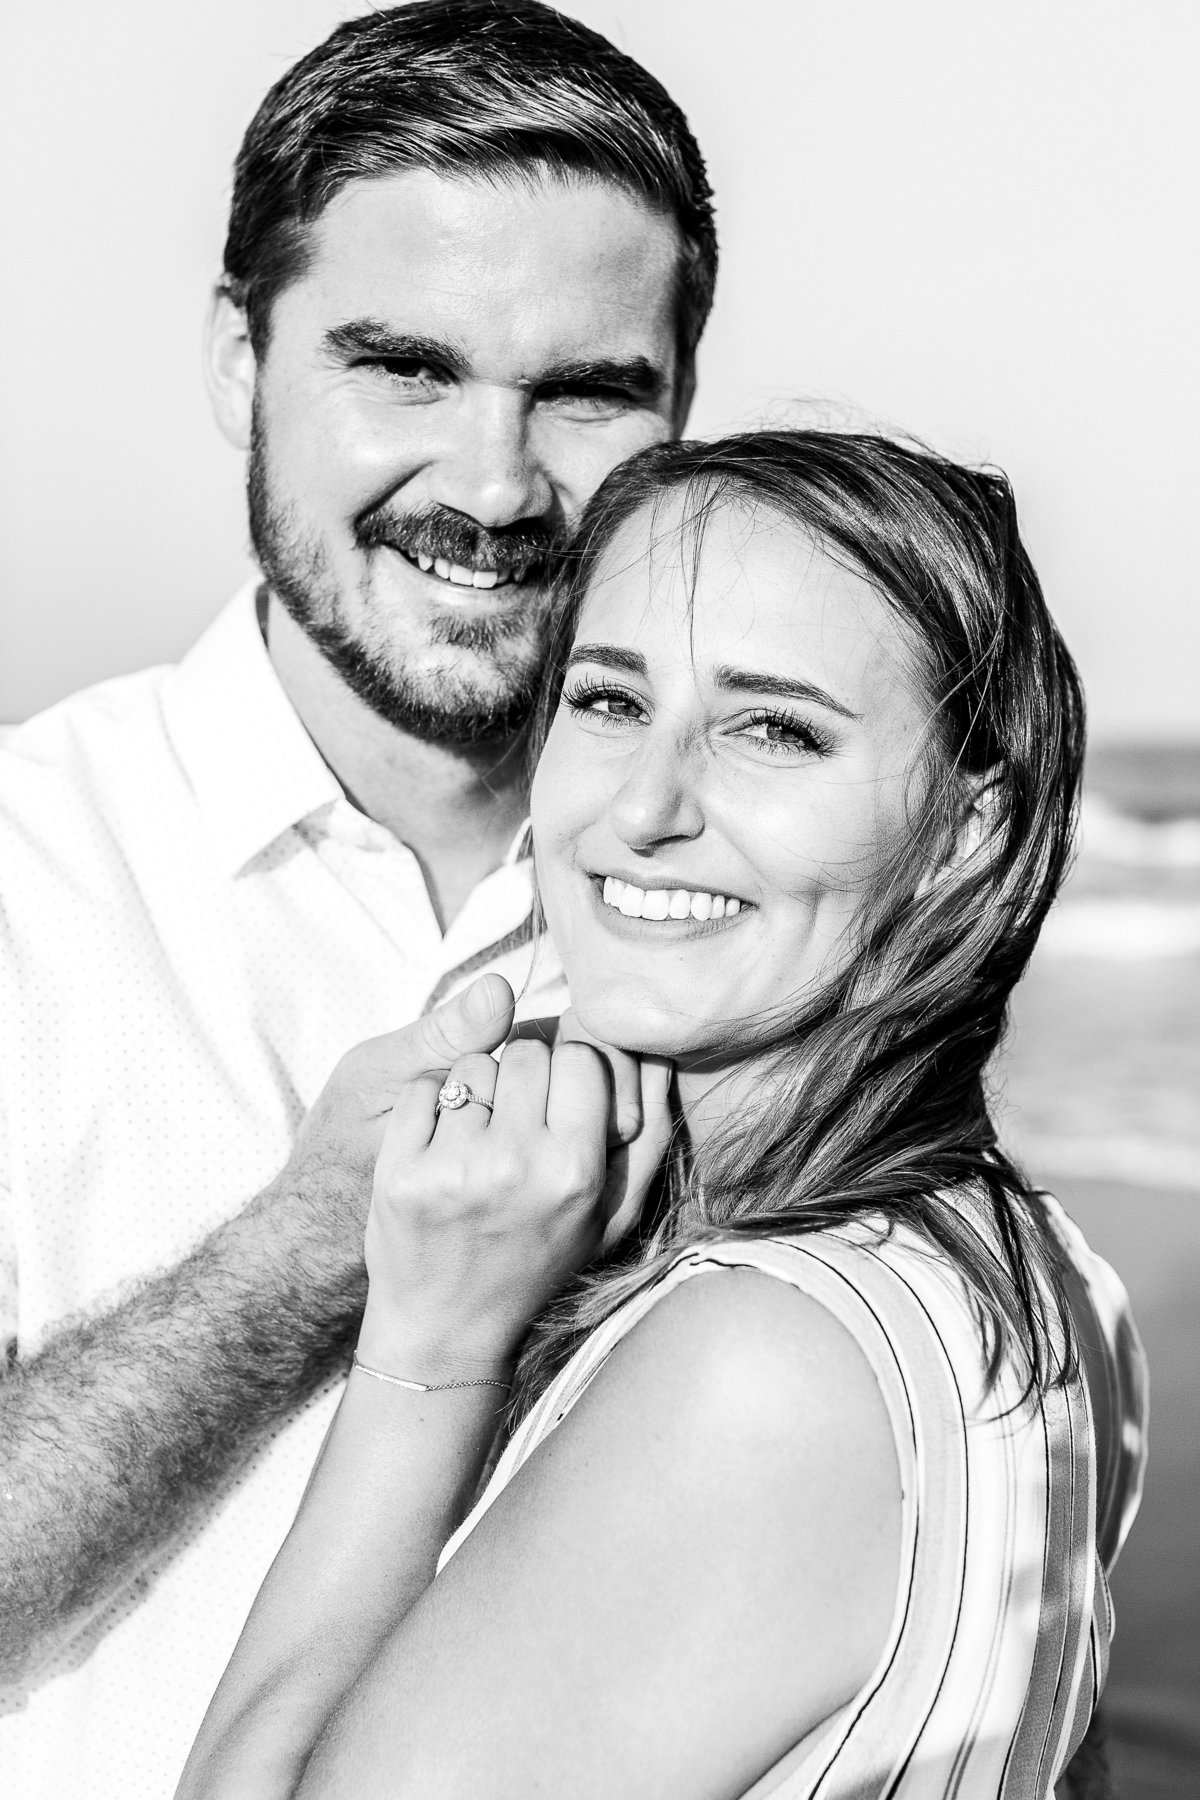 the-flanders-ocean-city-nj-engagement-photos-philadelphia-photographer-35